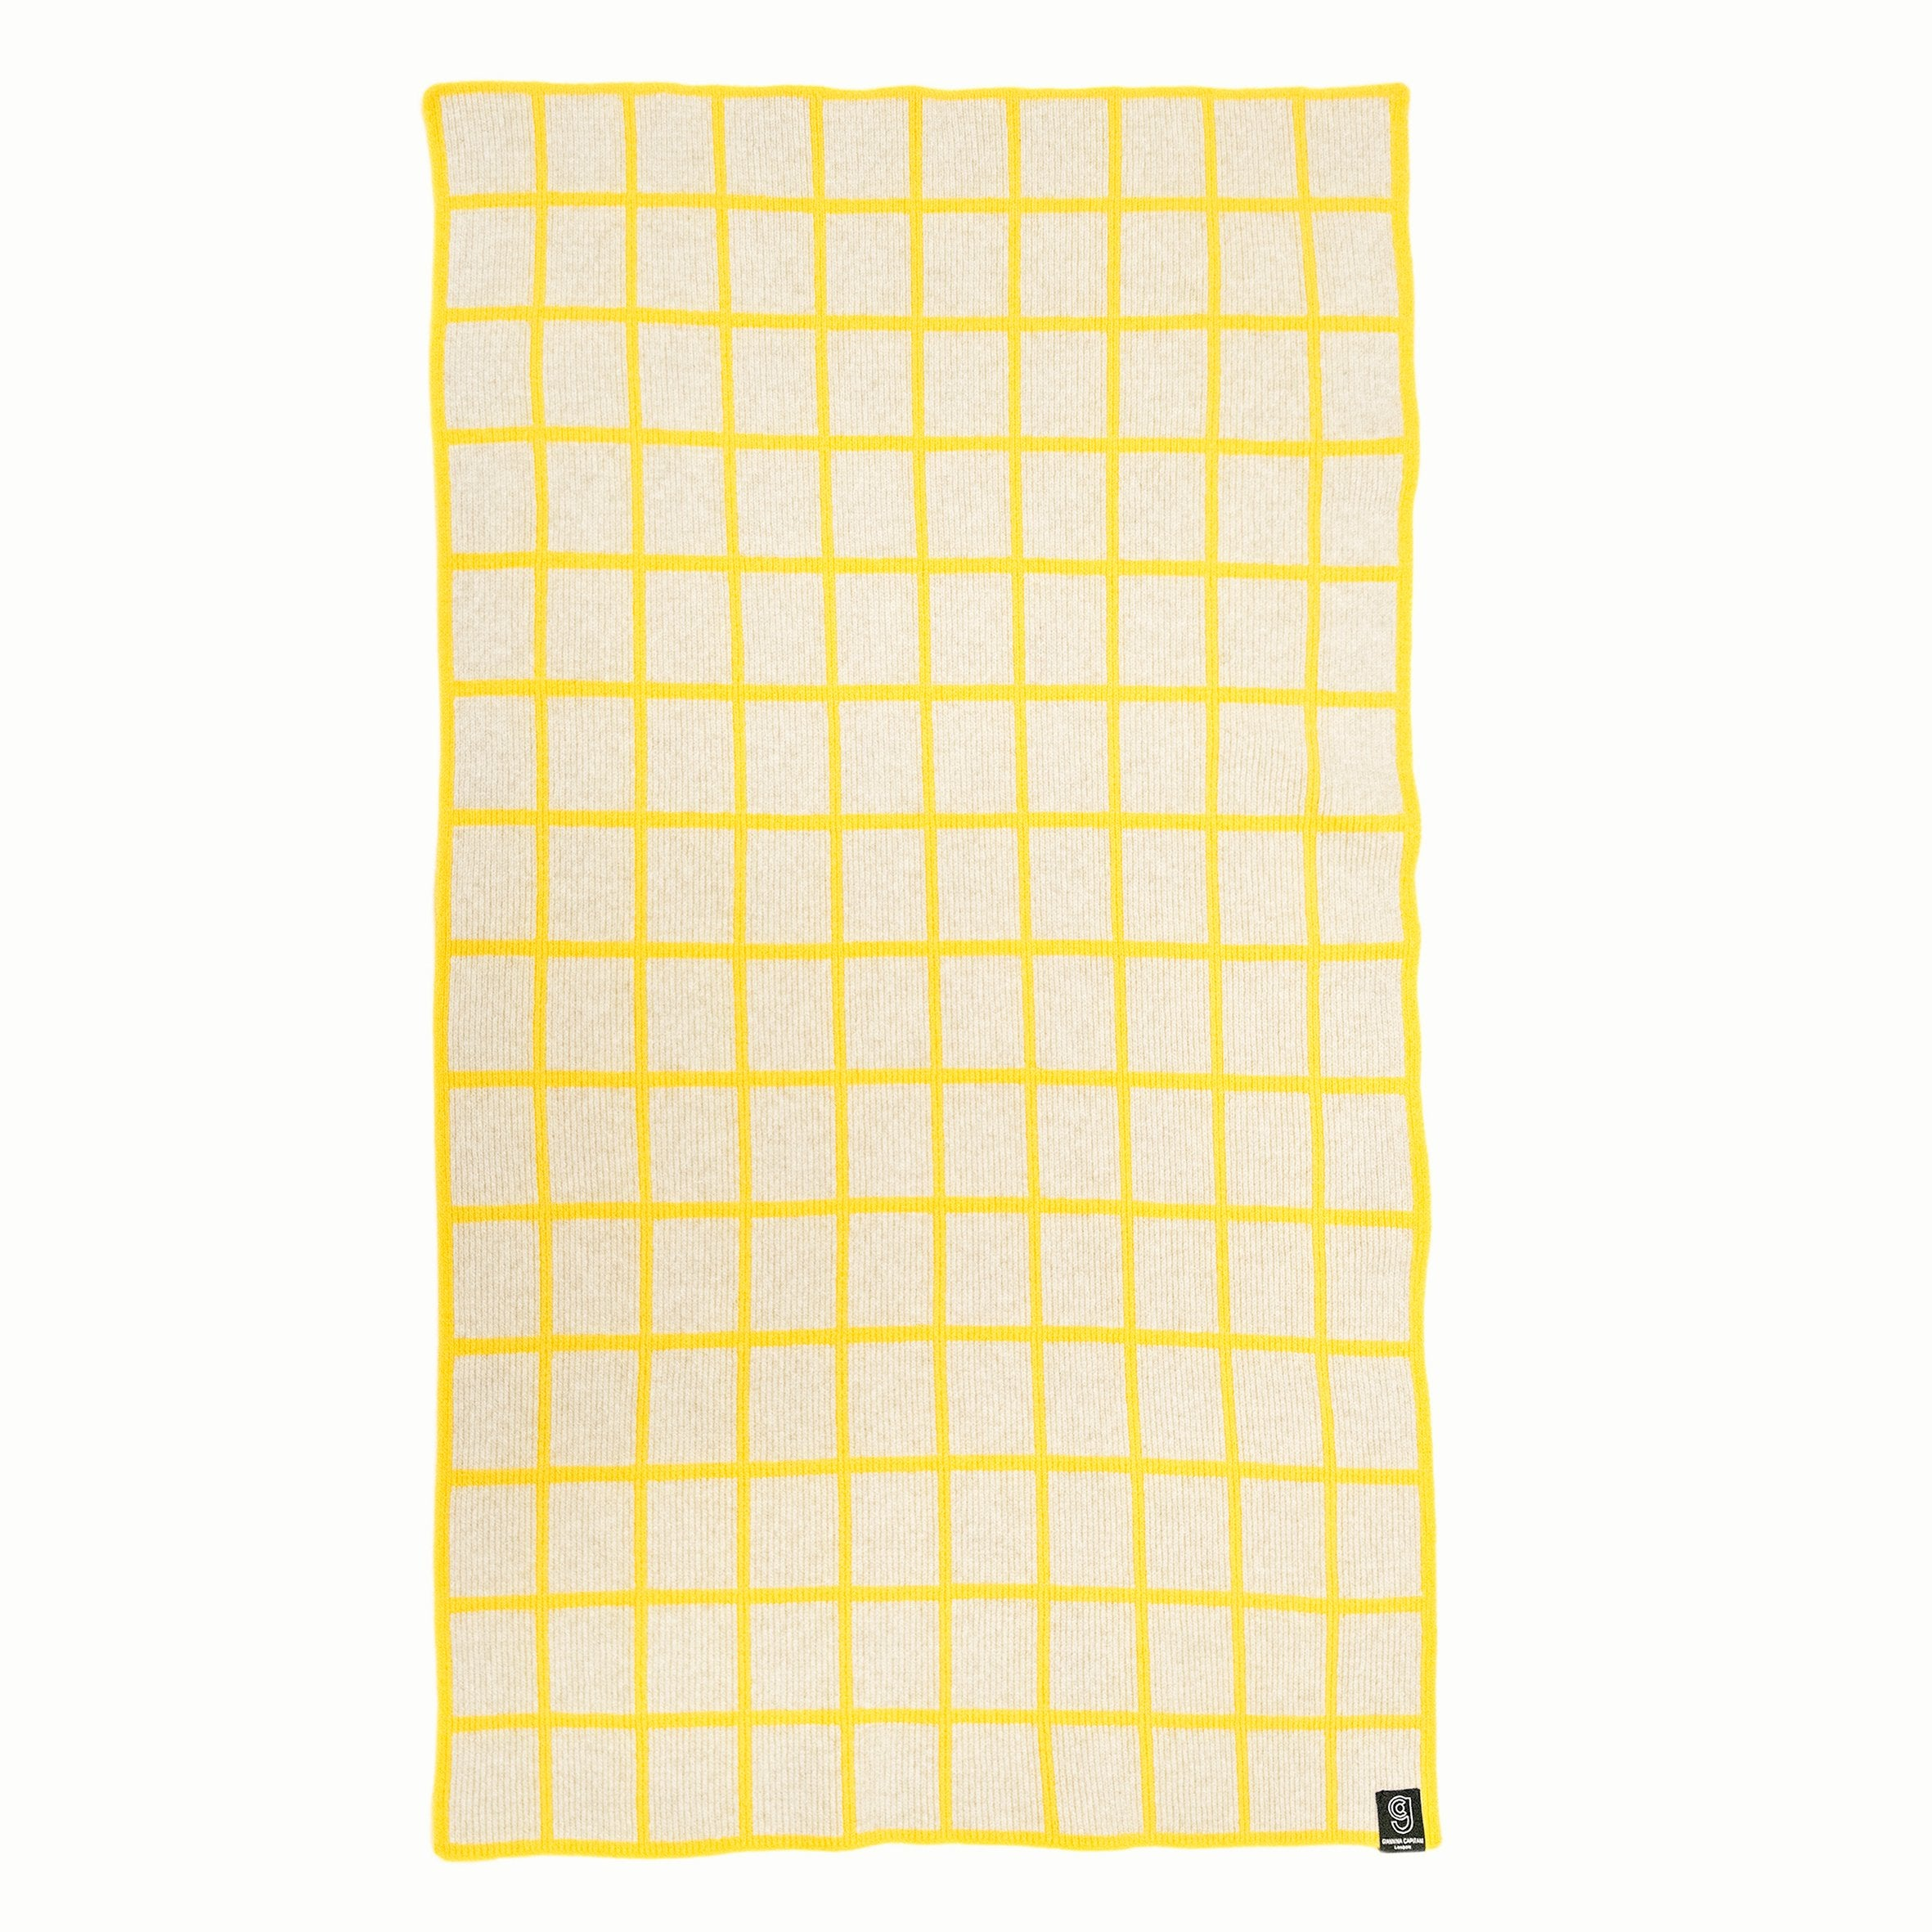 GRID BLANKET IN GREY AND YELLOW